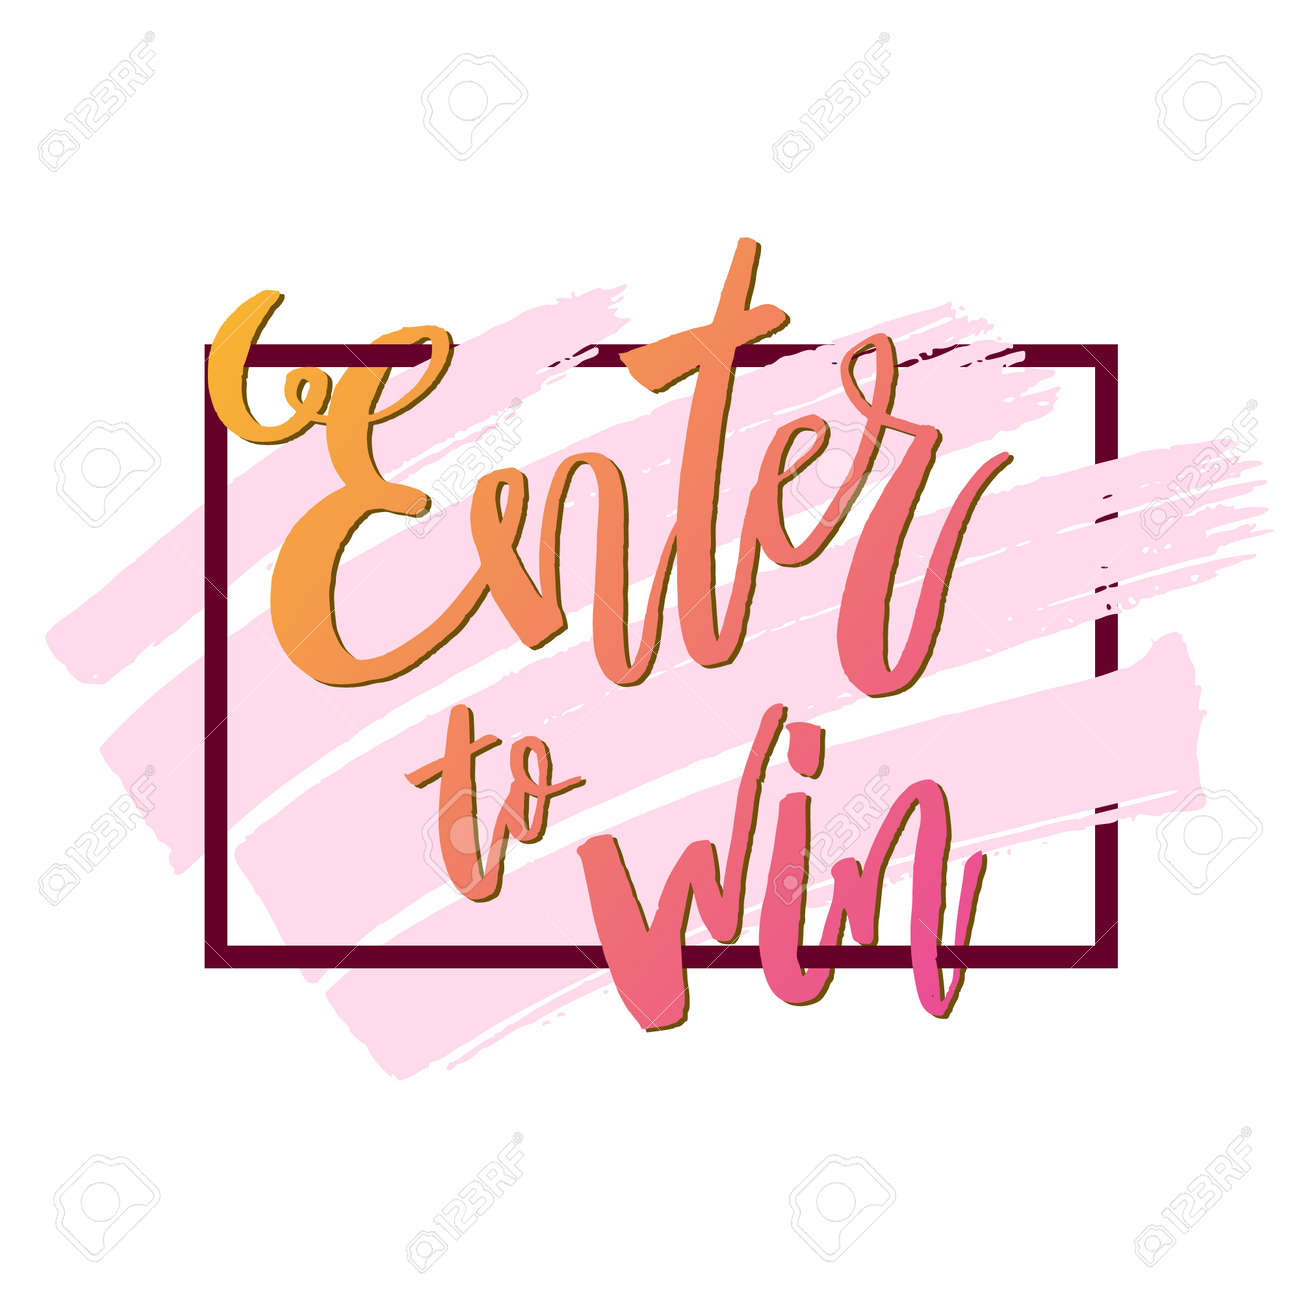 Giveaway enter to win modern poster template design for social media post or website banner with brush strokes. Free gift raffle, win prize and freebies. Vector illustration - 133190253